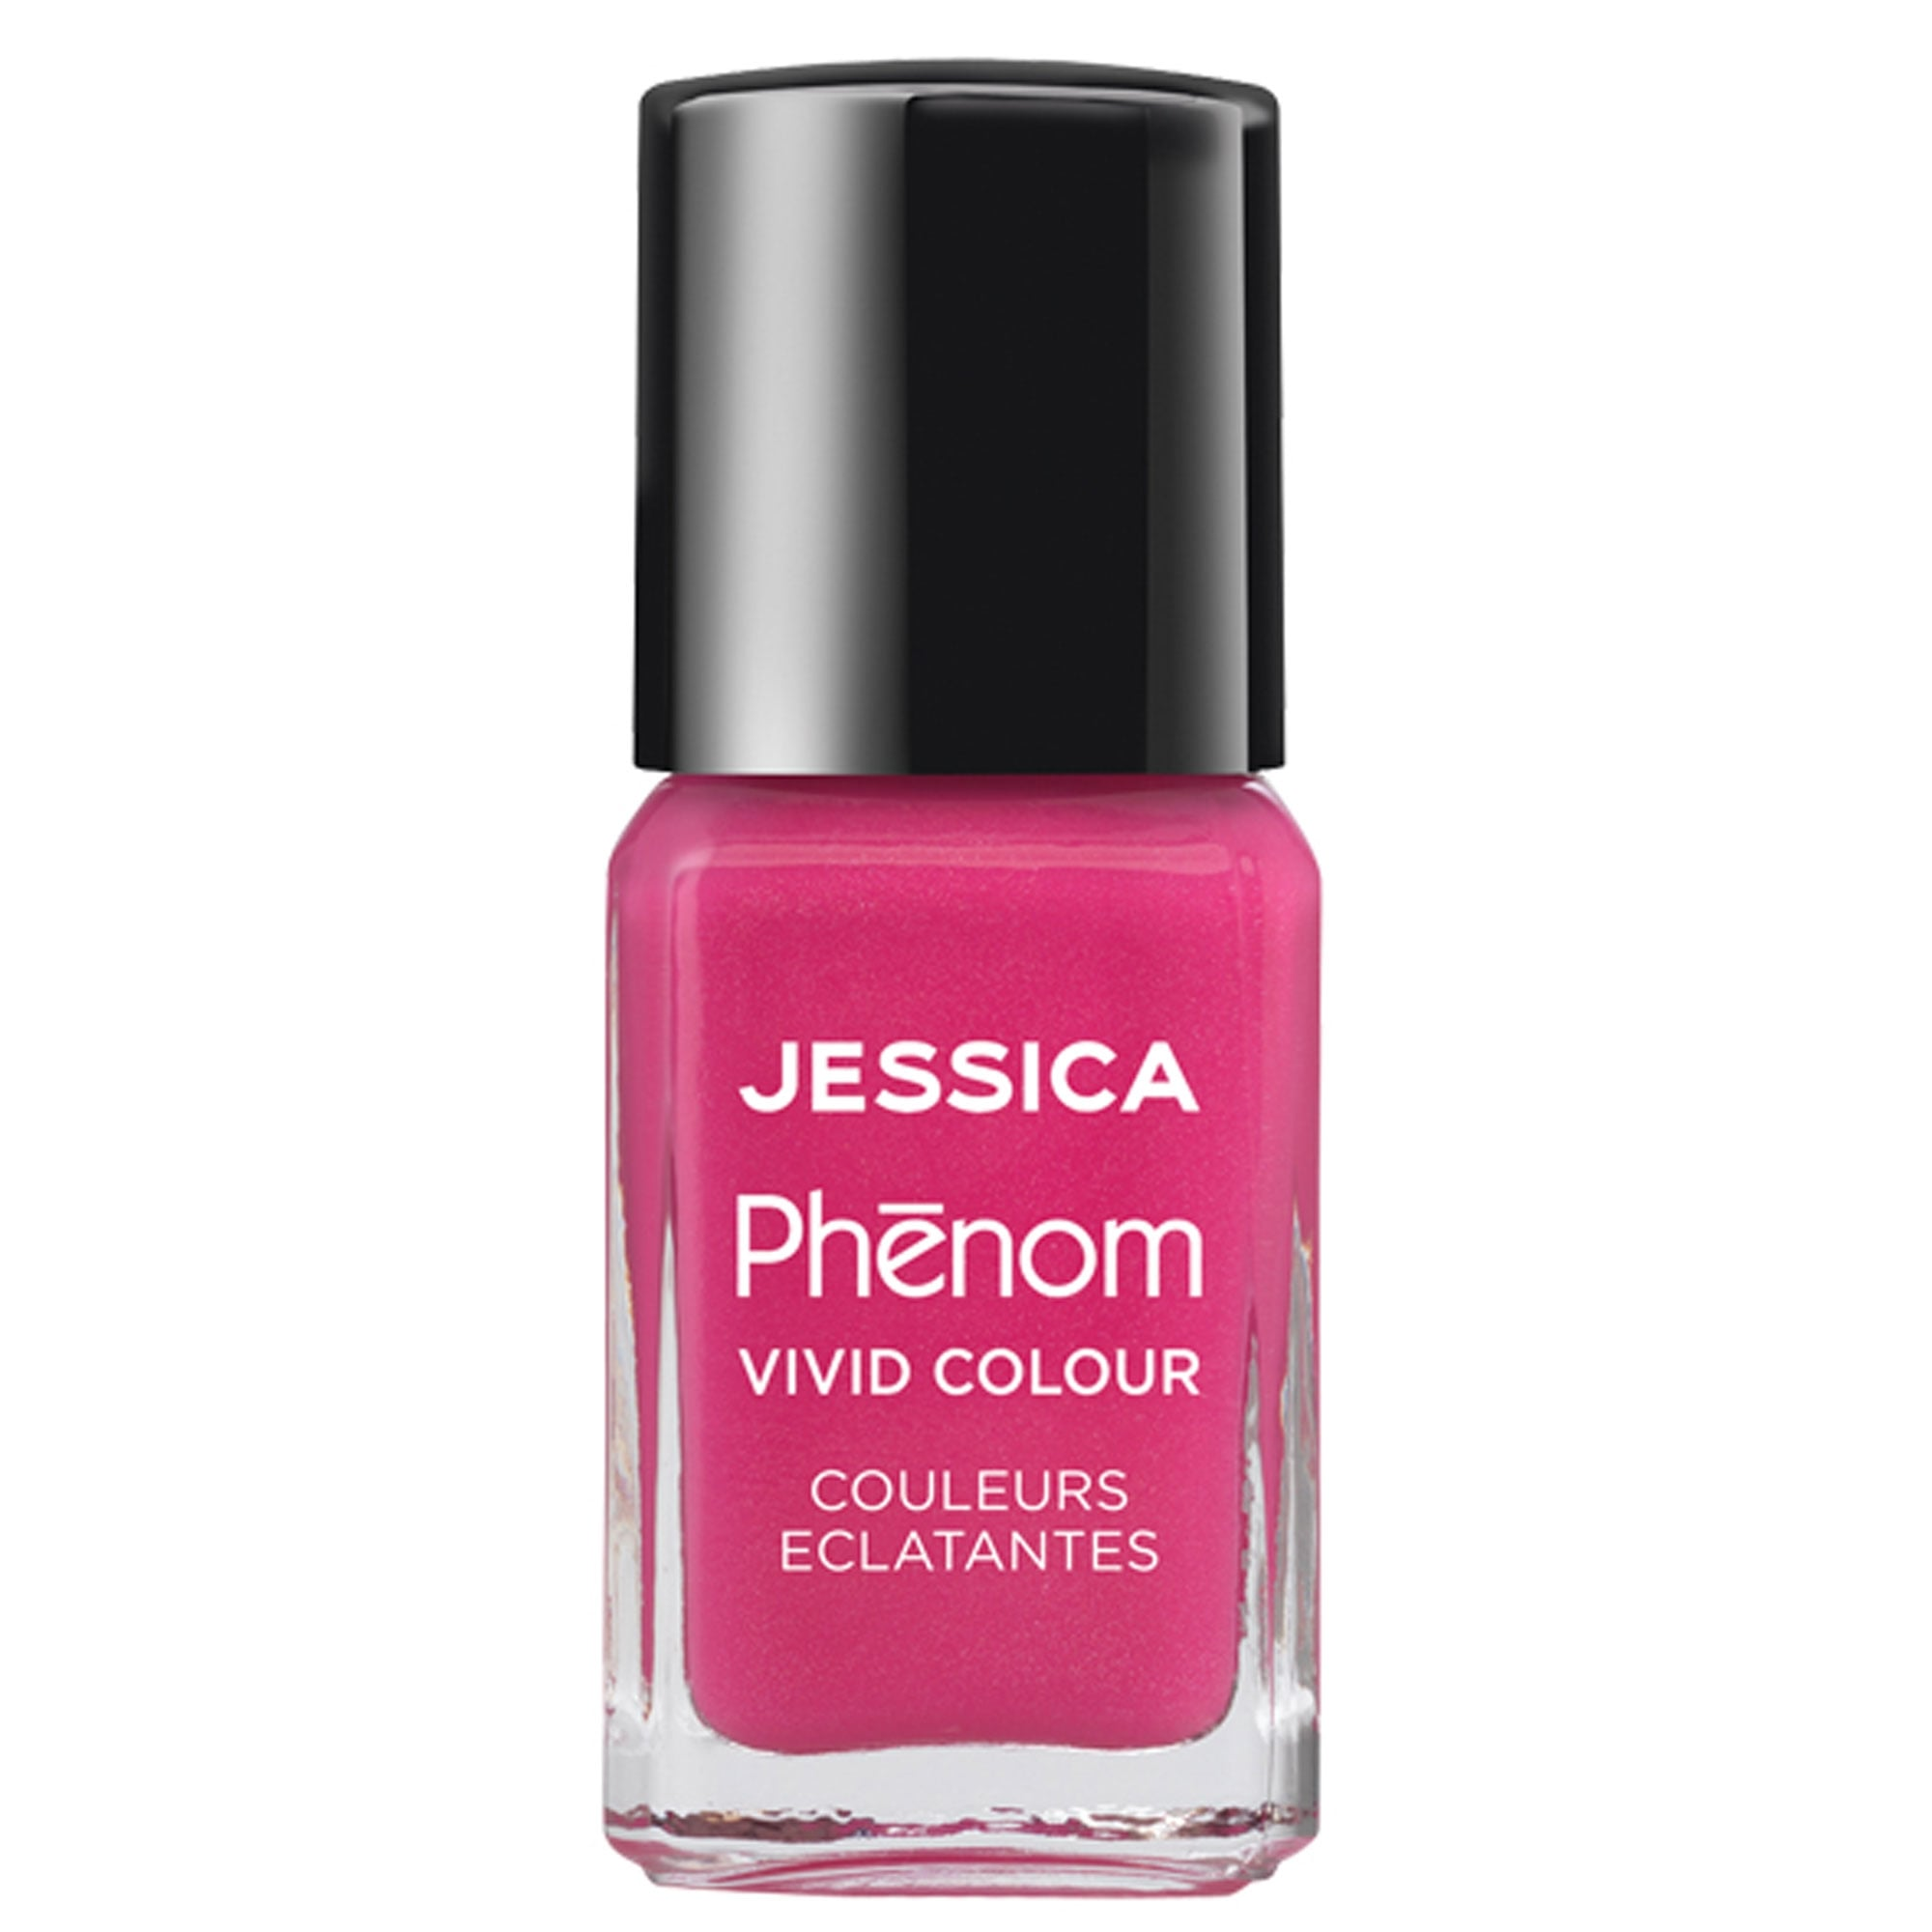 Jessica Phenom Vivid Colour Barbie Pink online at Nail Polish Direct